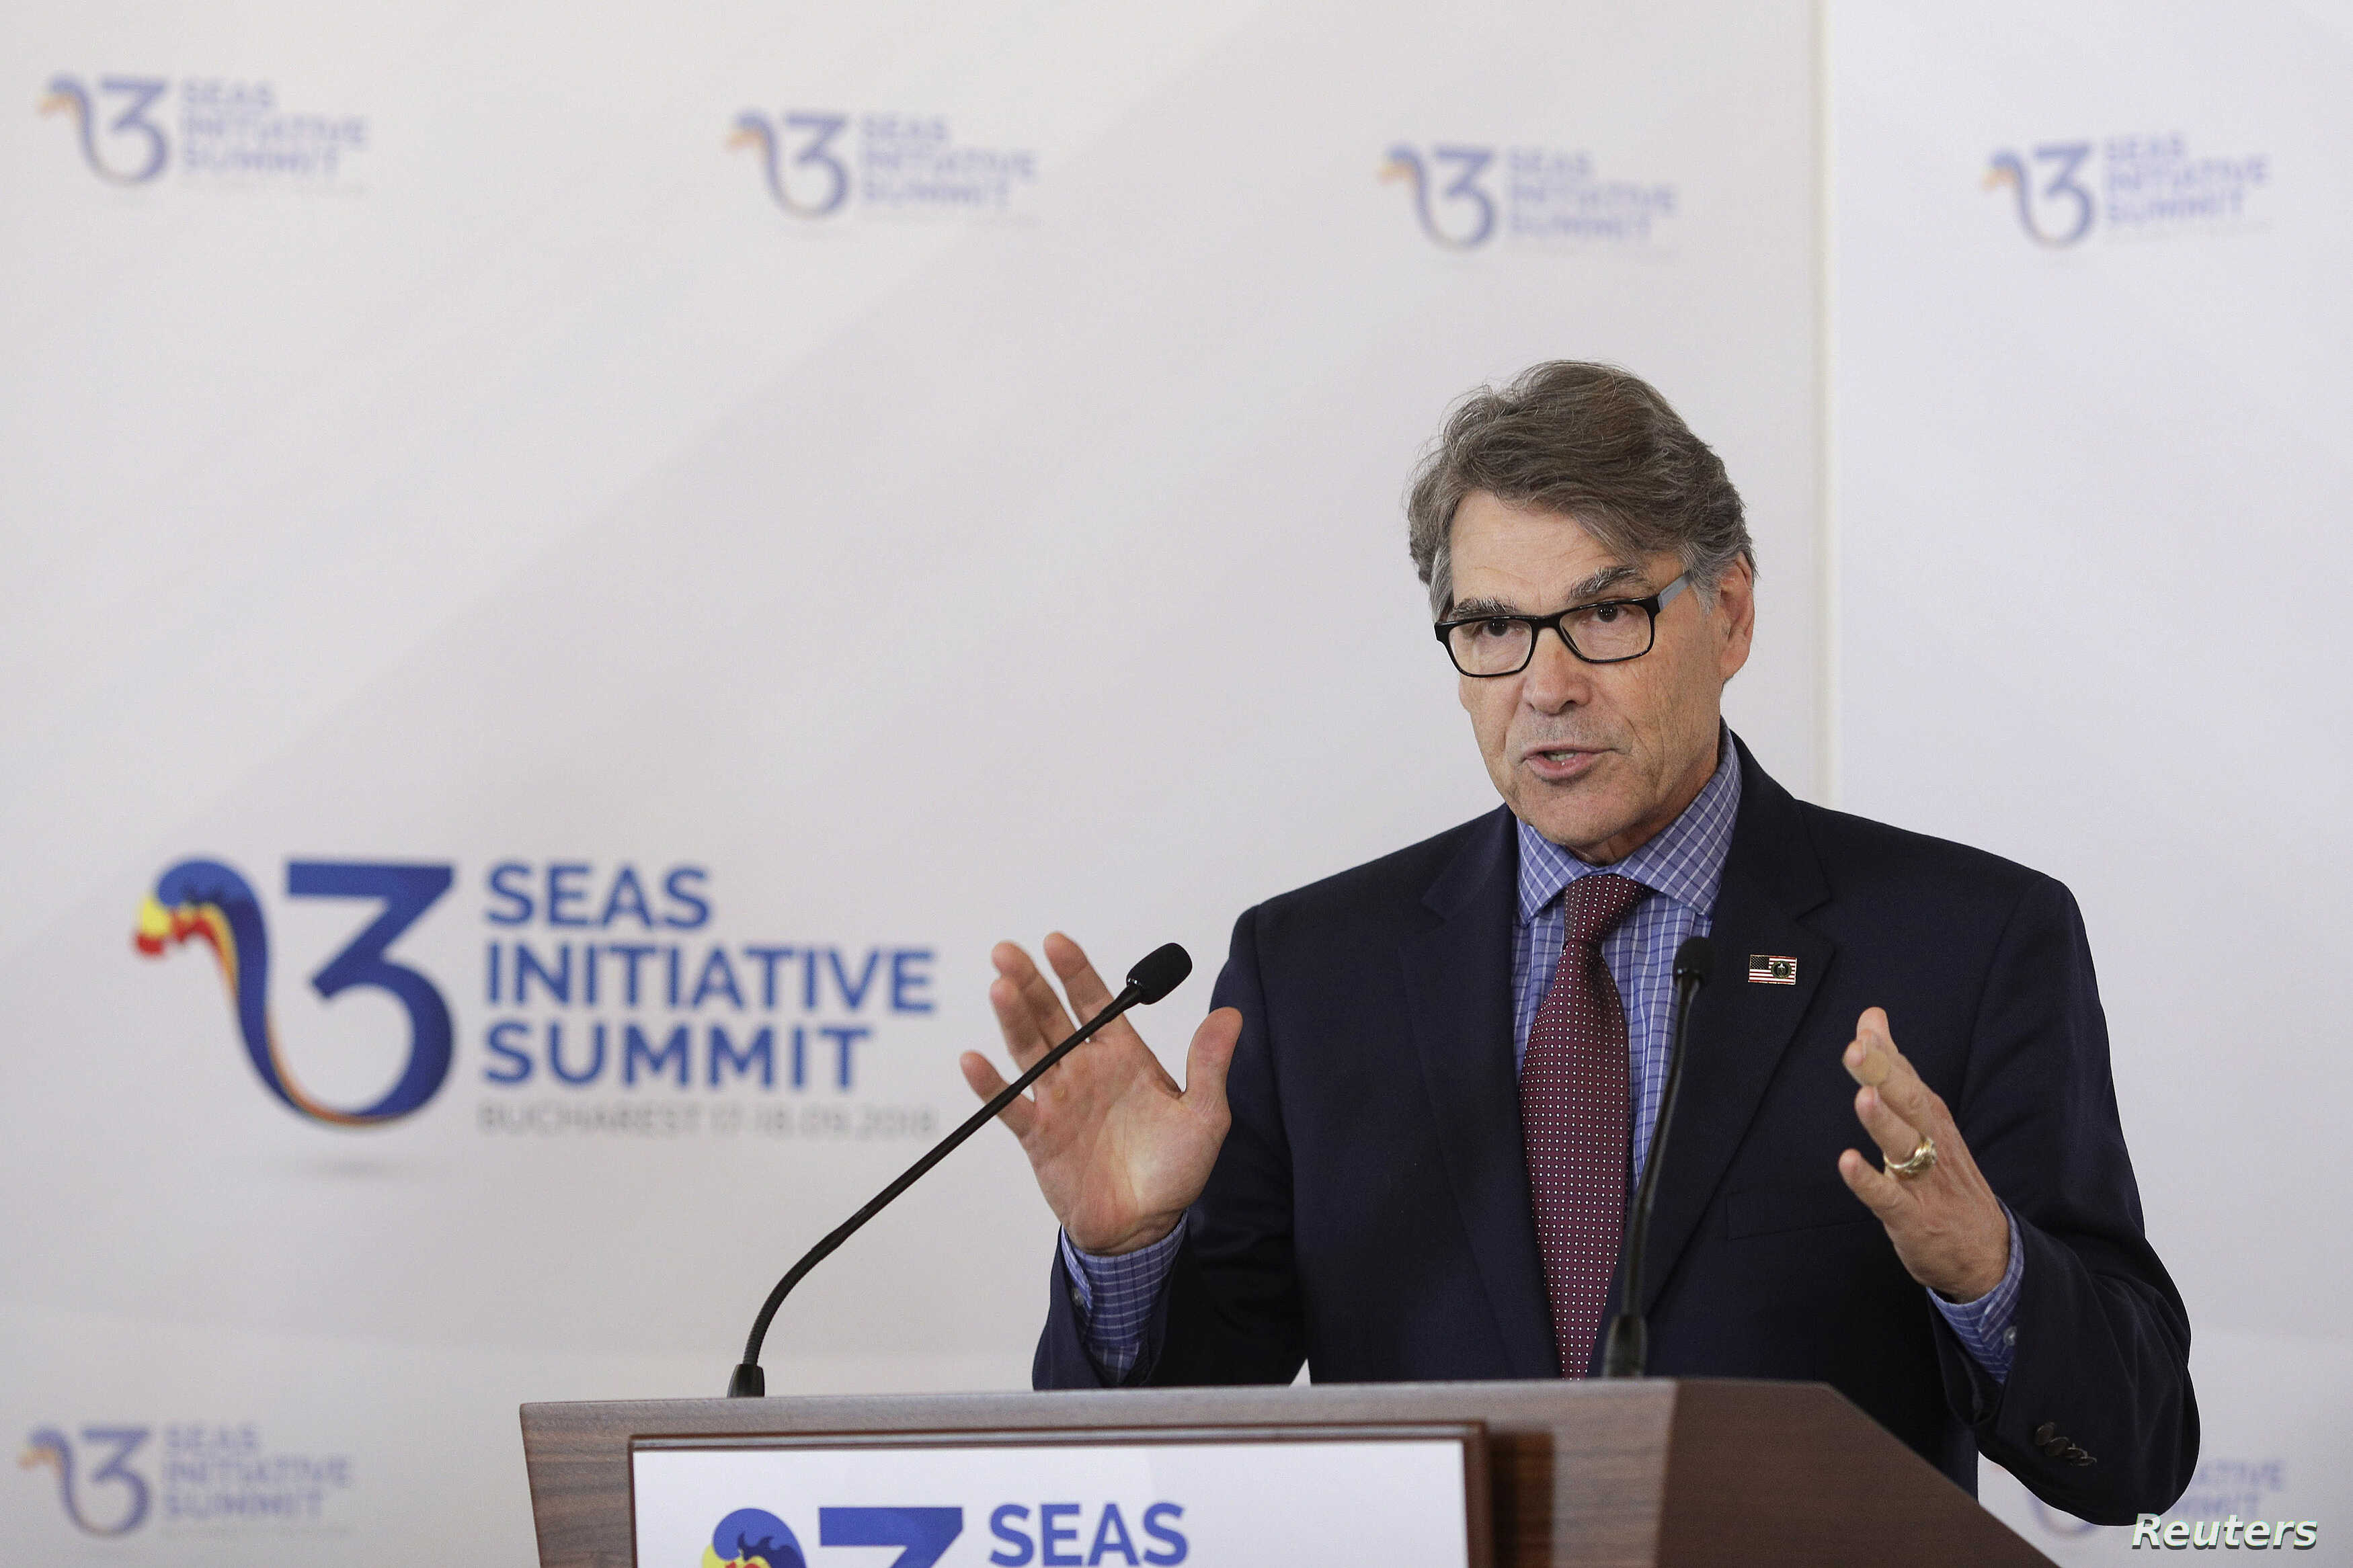 U.S. Energy Secretary Rick Perry speaks during the Three Seas Initiative Summit in Bucharest, Romania, Sept. 18, 2018.